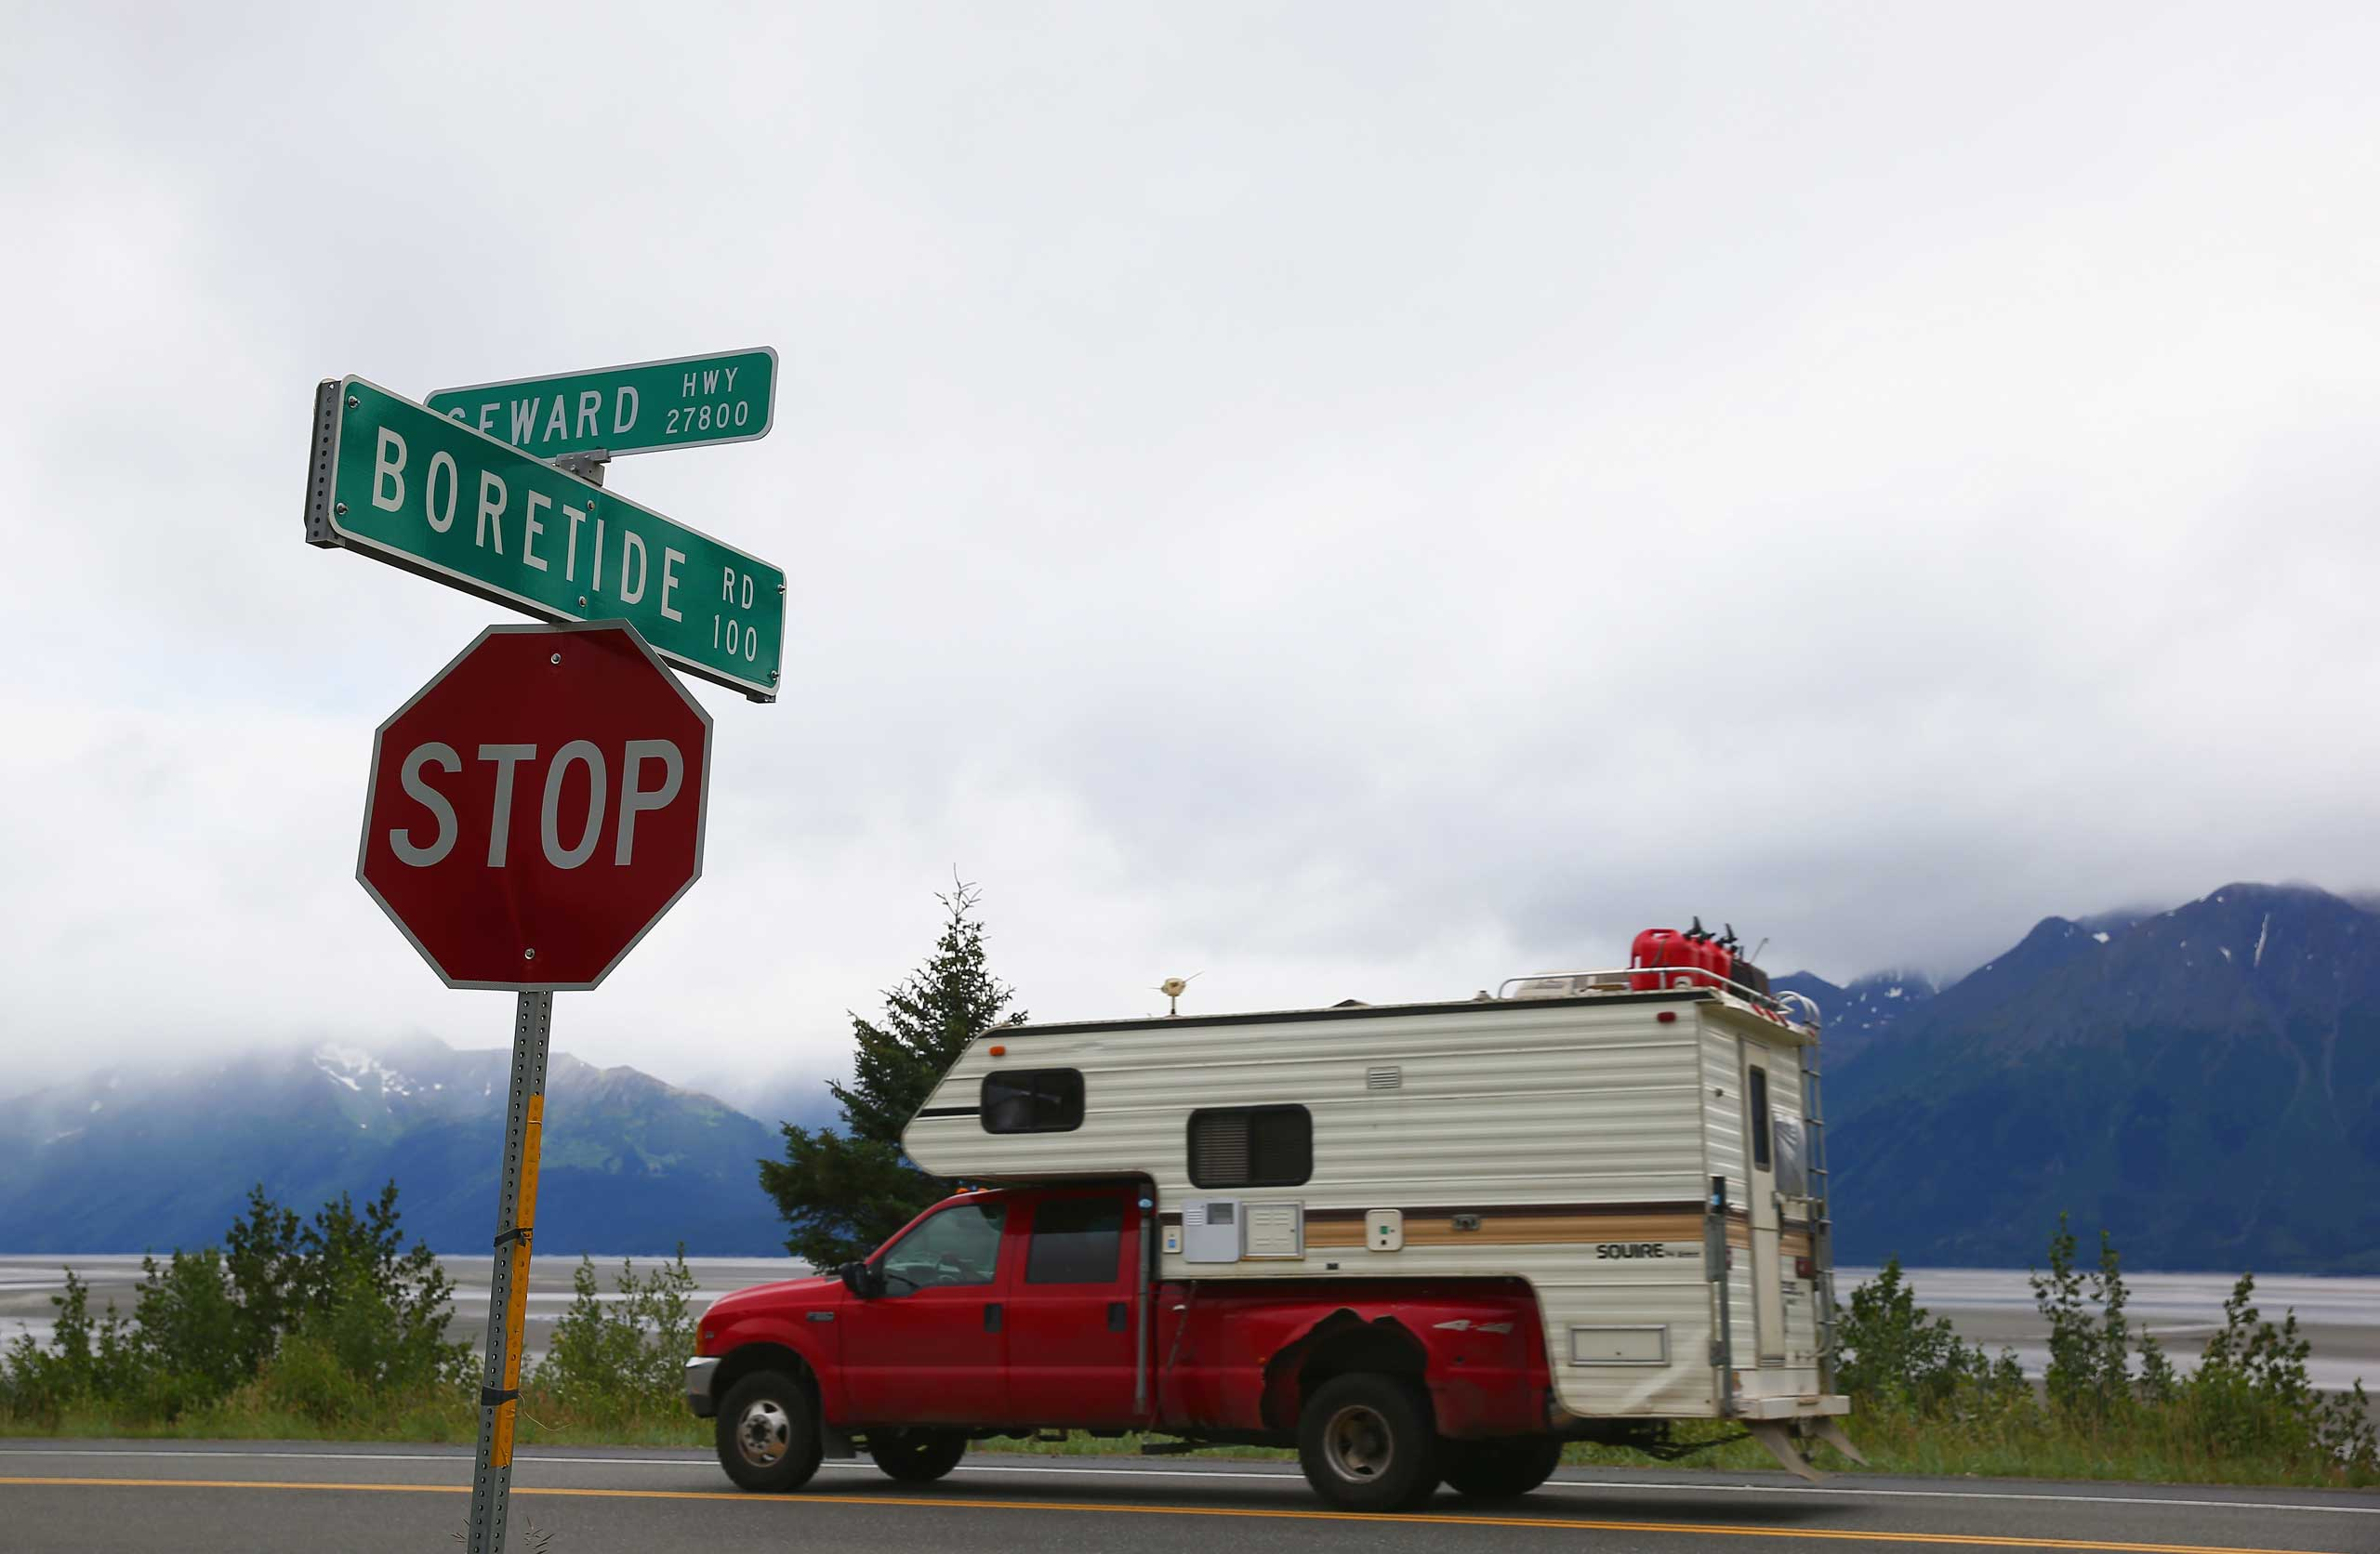 A truck passes a street sign named for the Bore Tide at Turnagain Arm on July 11, 2014 in Anchorage, Alaska.